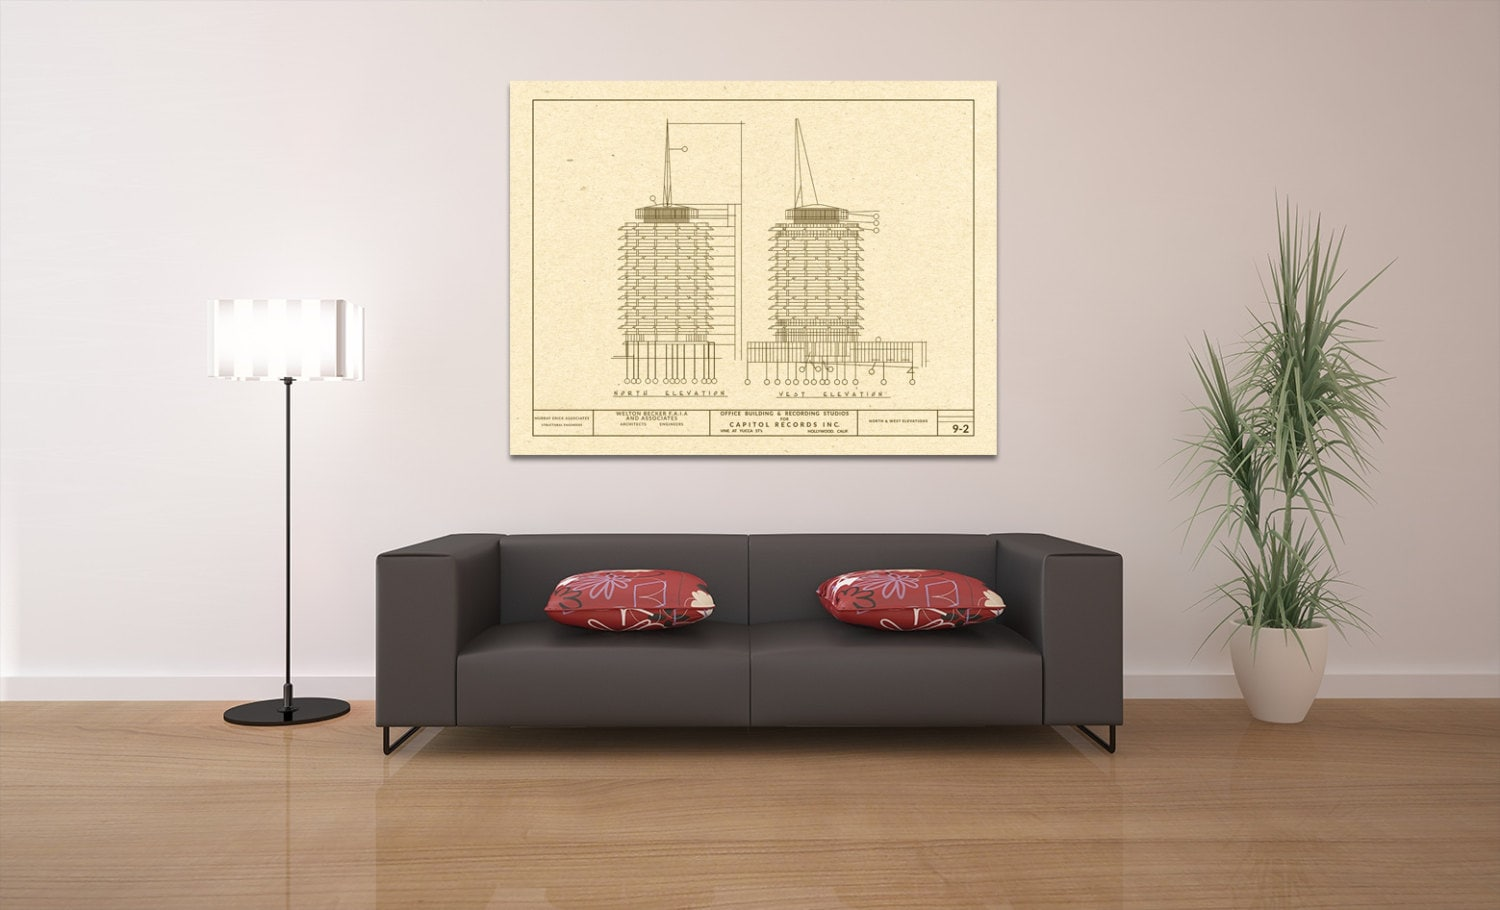 Print of vintage capitol records building blueprint on your choice print of vintage capitol records building blueprint on your choice of photo paper matter paper or stretched canvas malvernweather Image collections